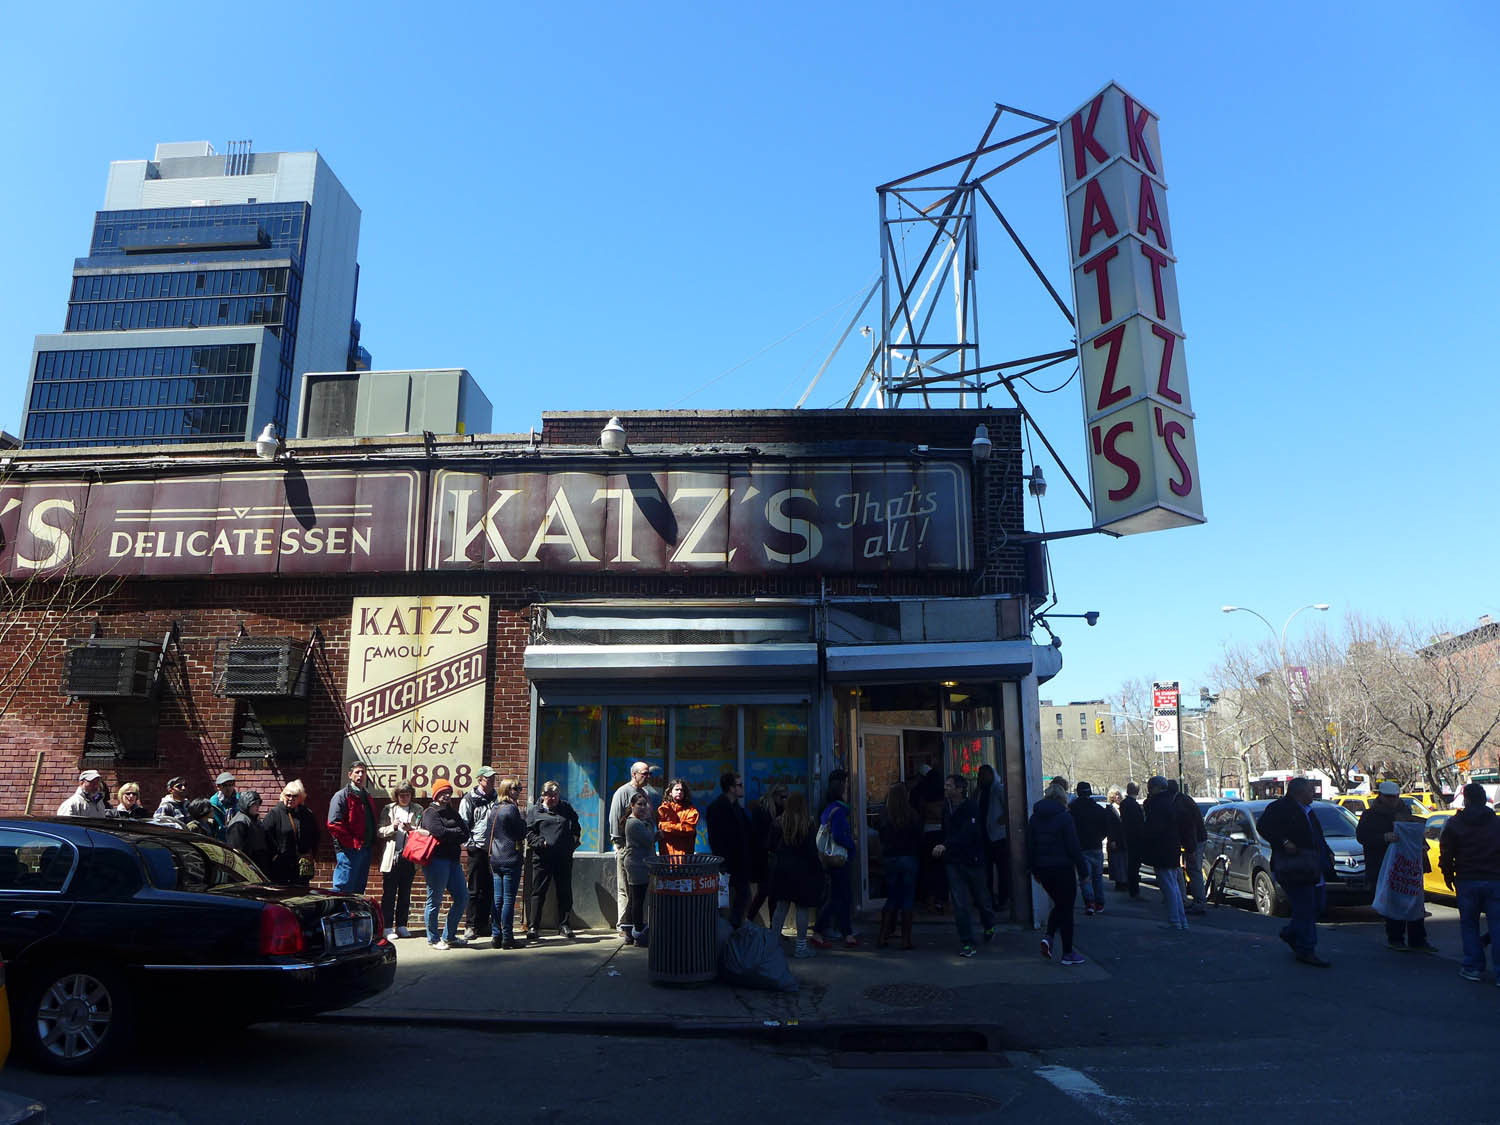 Over to Katz's (check out the queue)